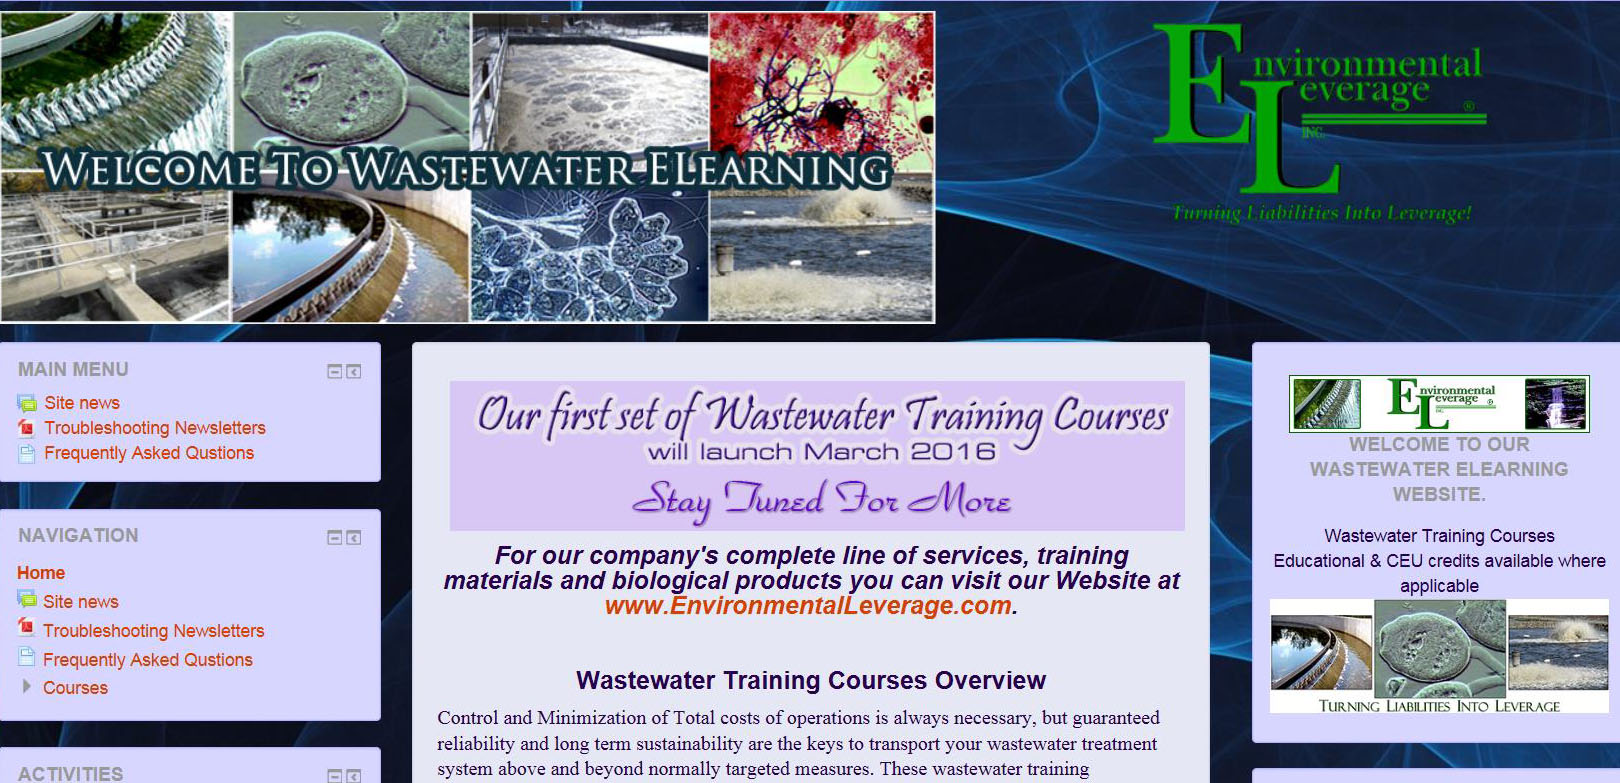 WAstewater Elearning